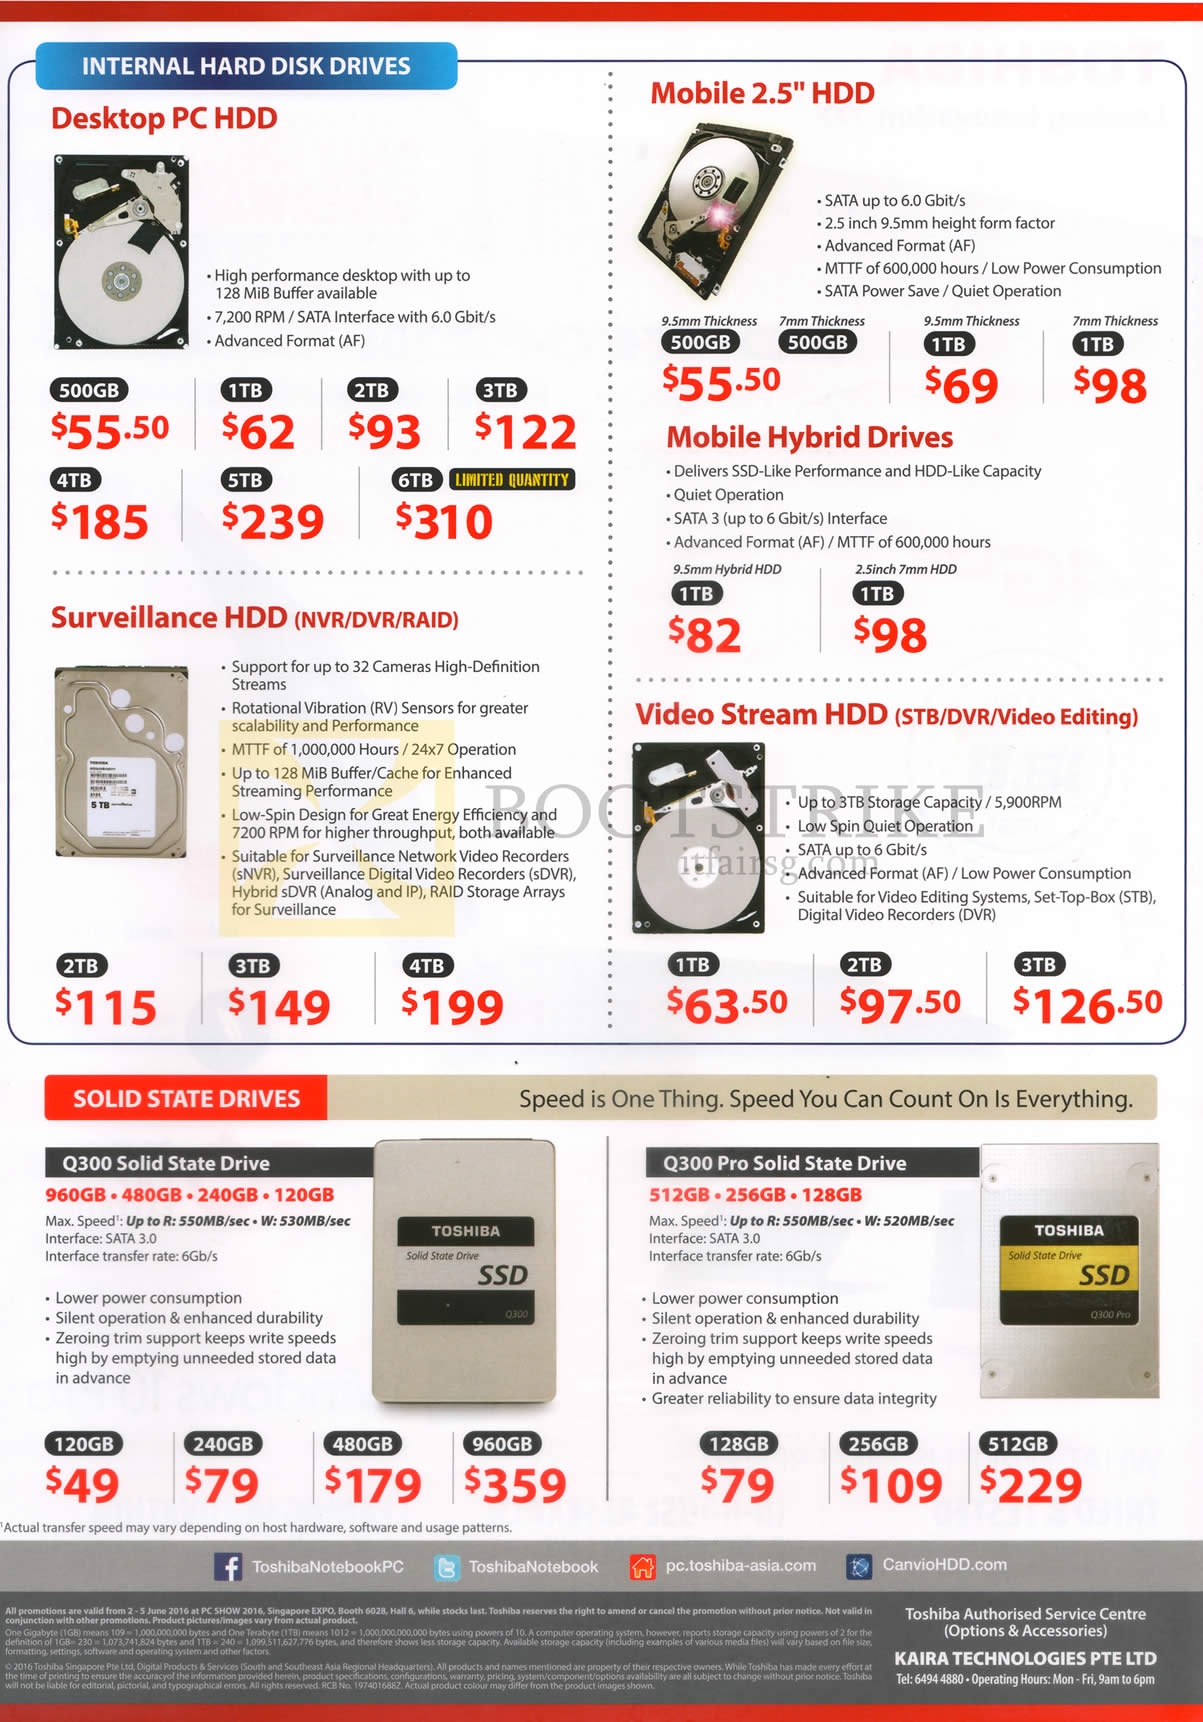 PC SHOW 2016 price list image brochure of Toshiba Internal Hard Disk Drives, Solid State Drives Desktop PC HDD, Mobile 2.5 HDD, Surveillance HDD, Video Stream HDD, Q300 Solid State Drive, Q300 Pro Solid State Drive